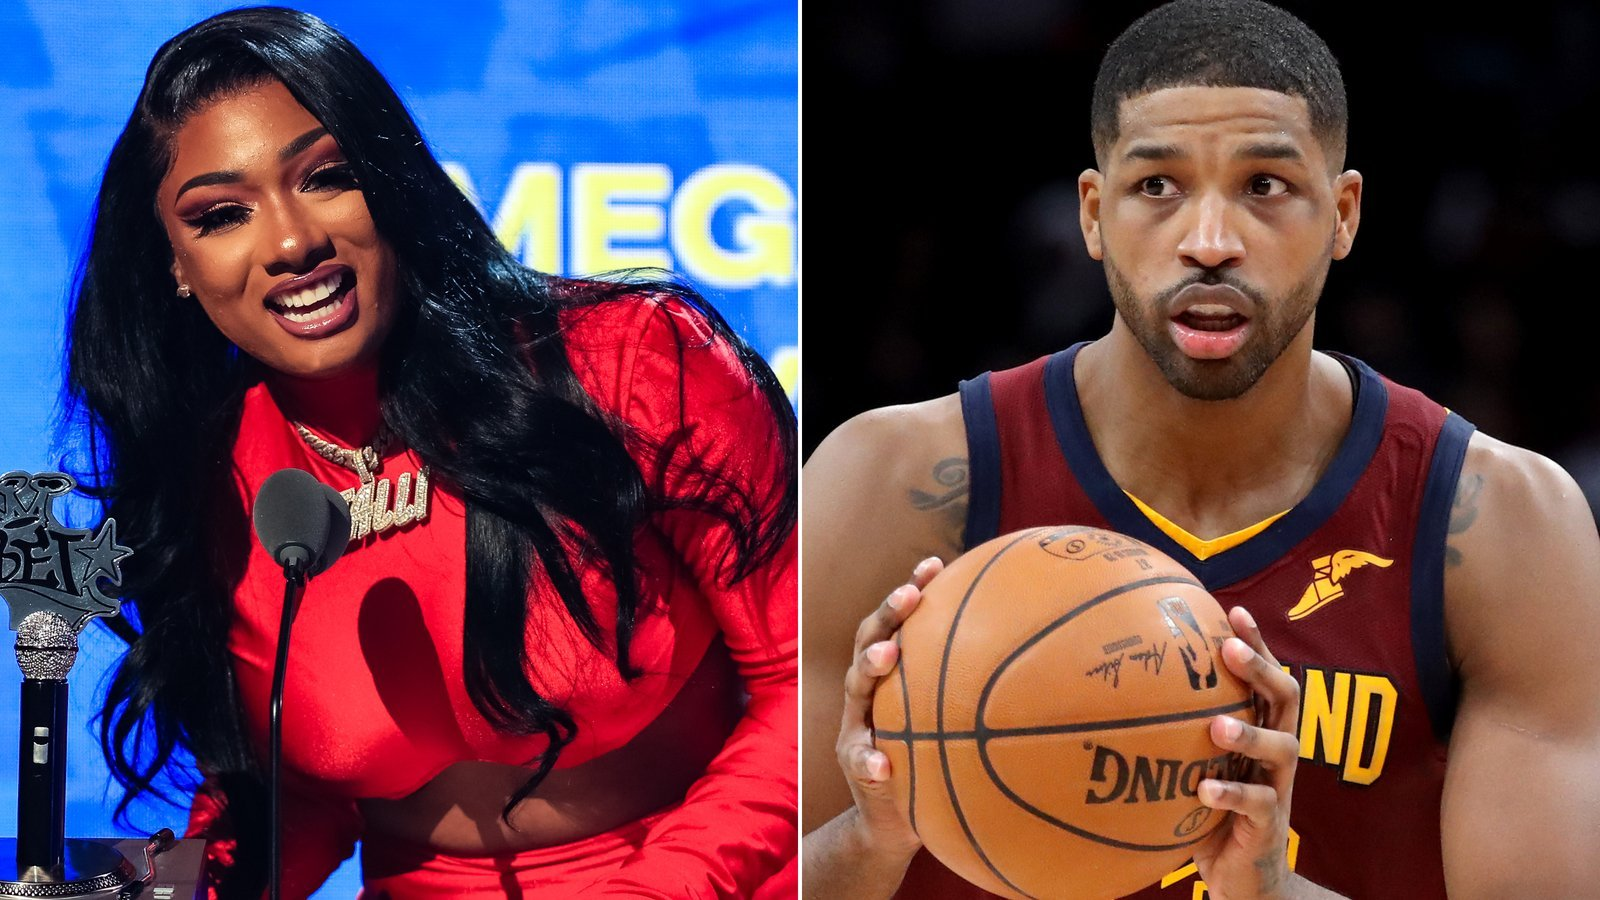 Megan Thee Stallion denies Tristan Thompson dating speculation